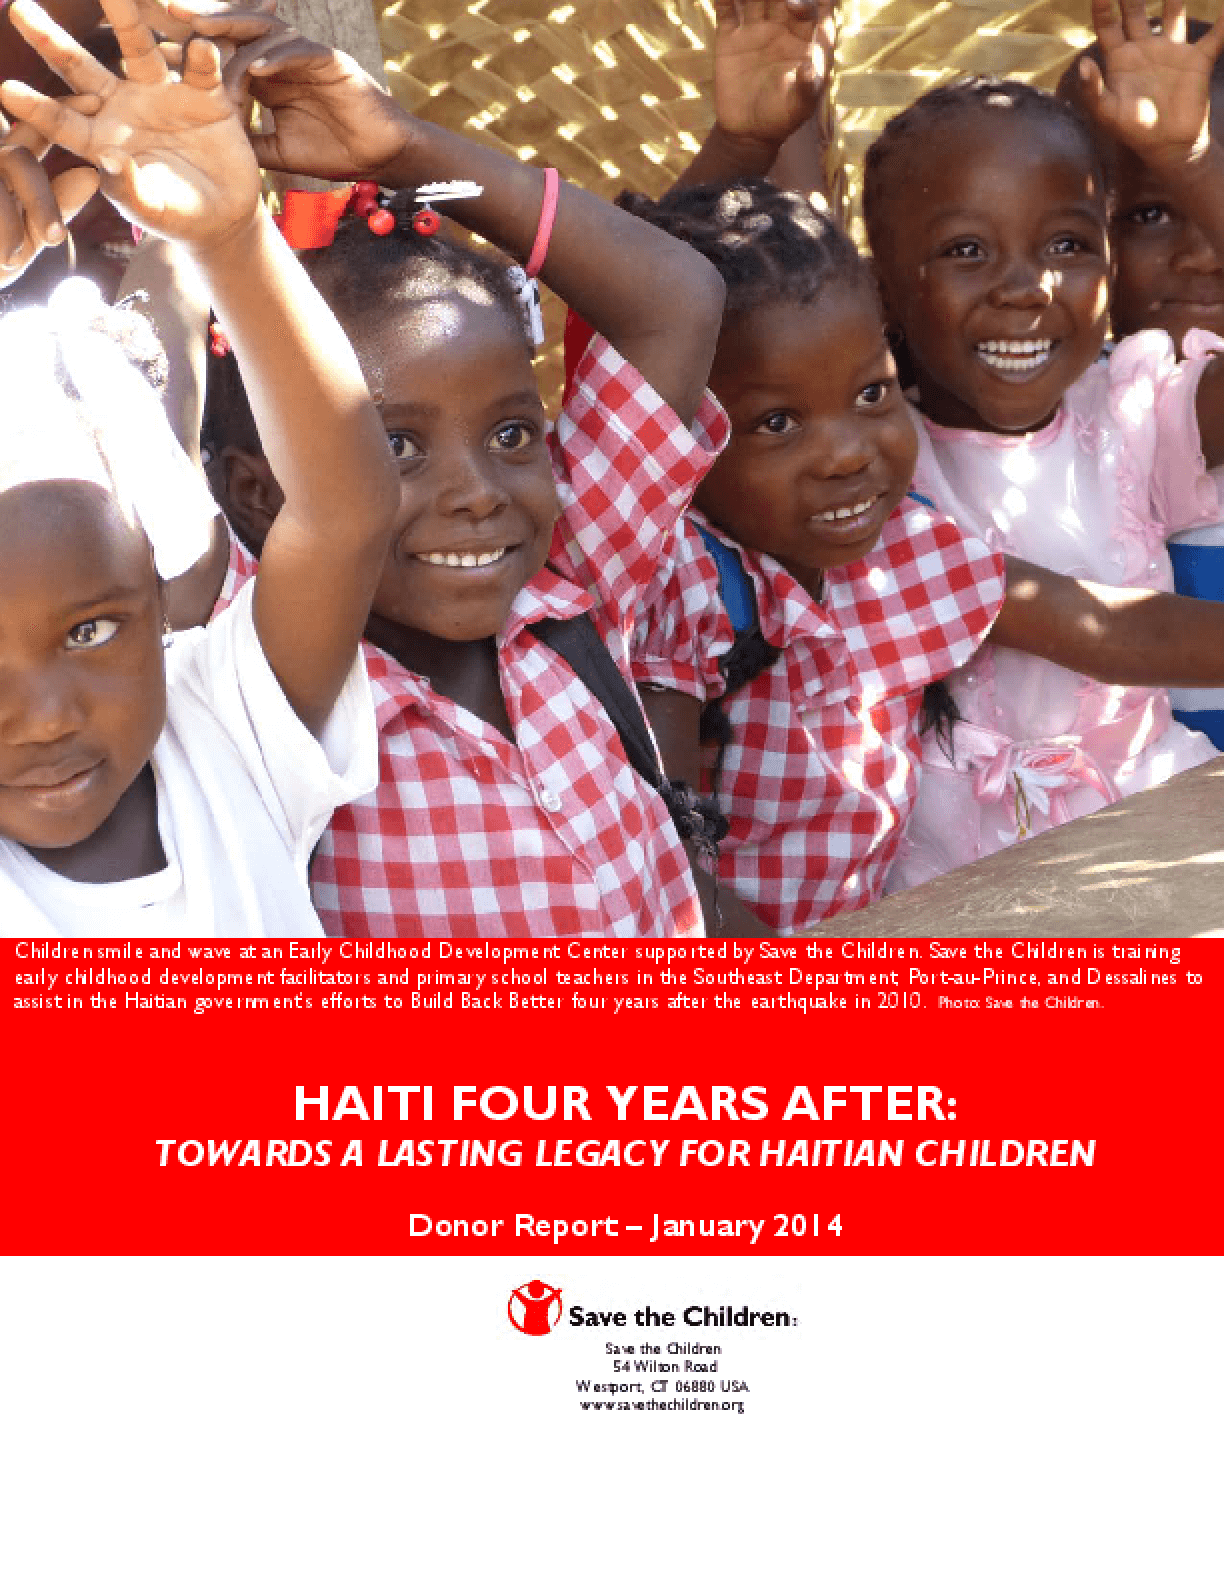 Haiti Four Years Later: Towards a Lasting Legacy for Haitian Children